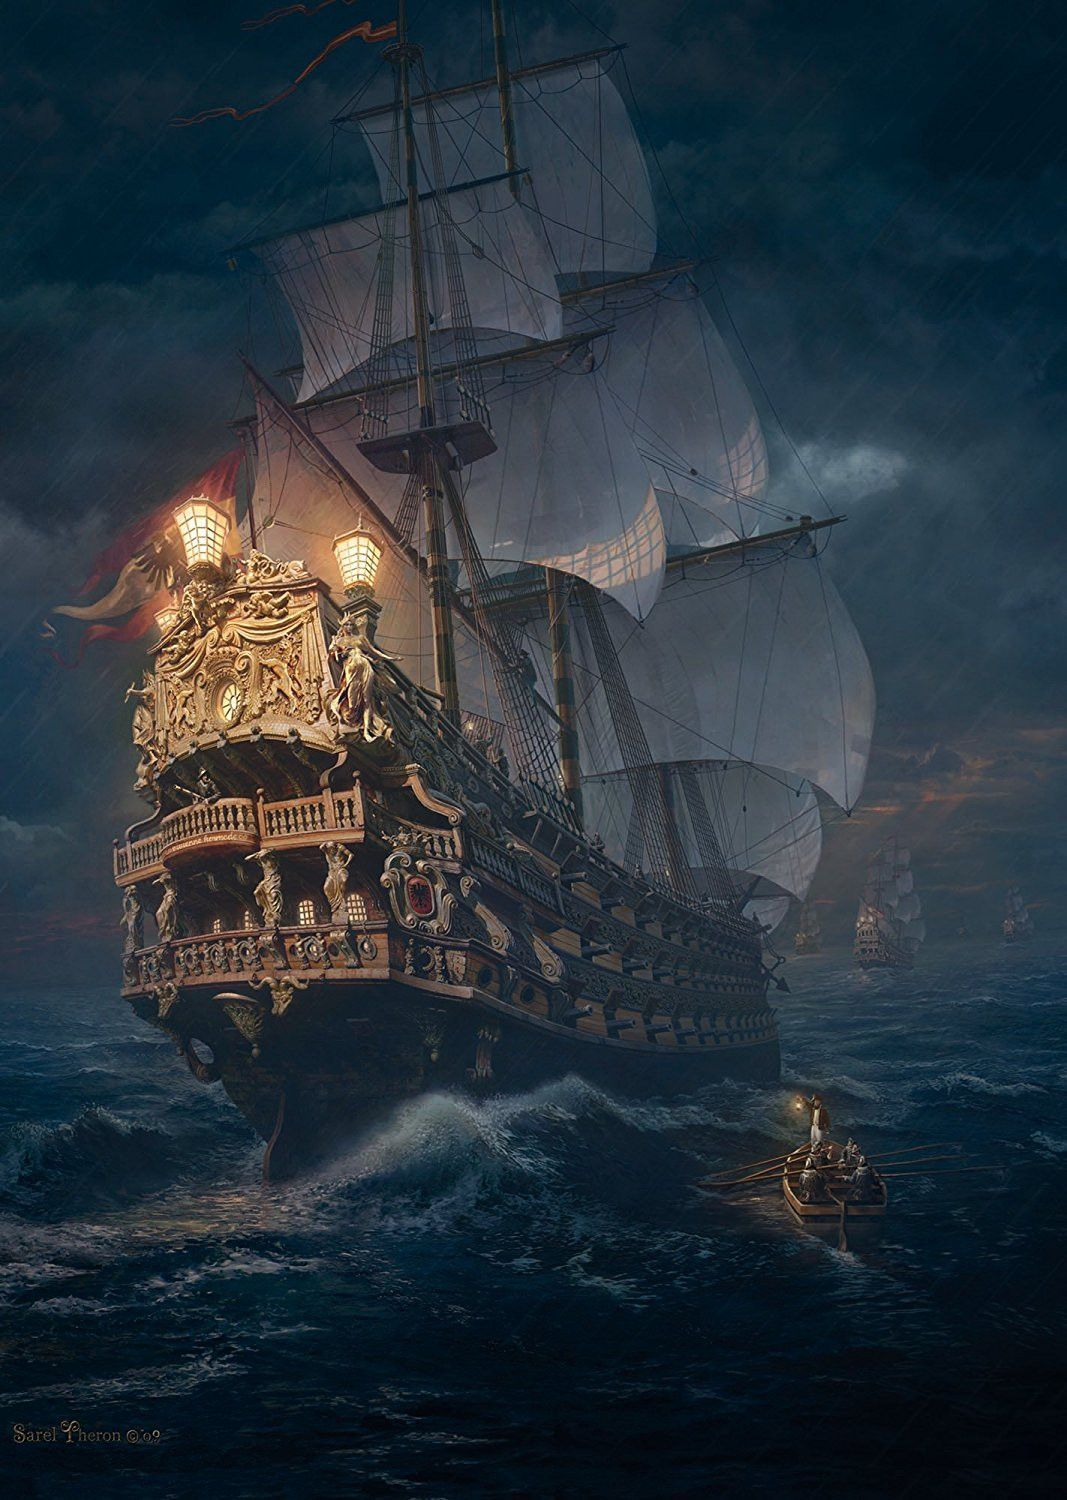 on the high seas 1000 piece puzzle 1000 piece jigsaw puzzles